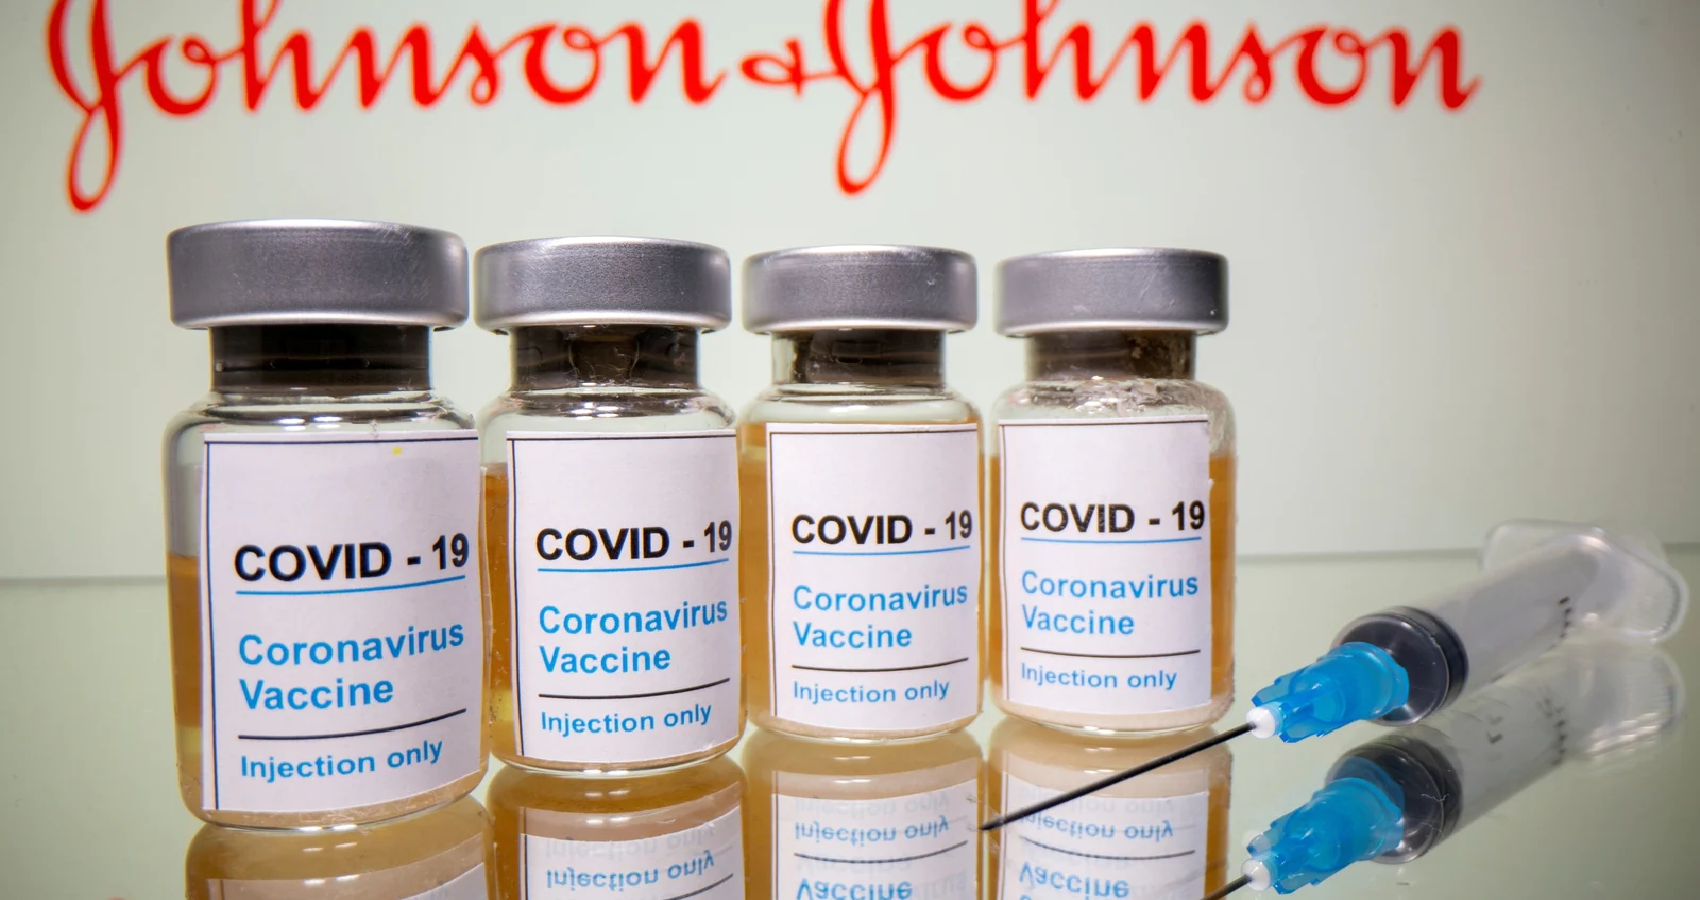 CDC Panel Allows J&J Vaccine for COVID-19 To Resume